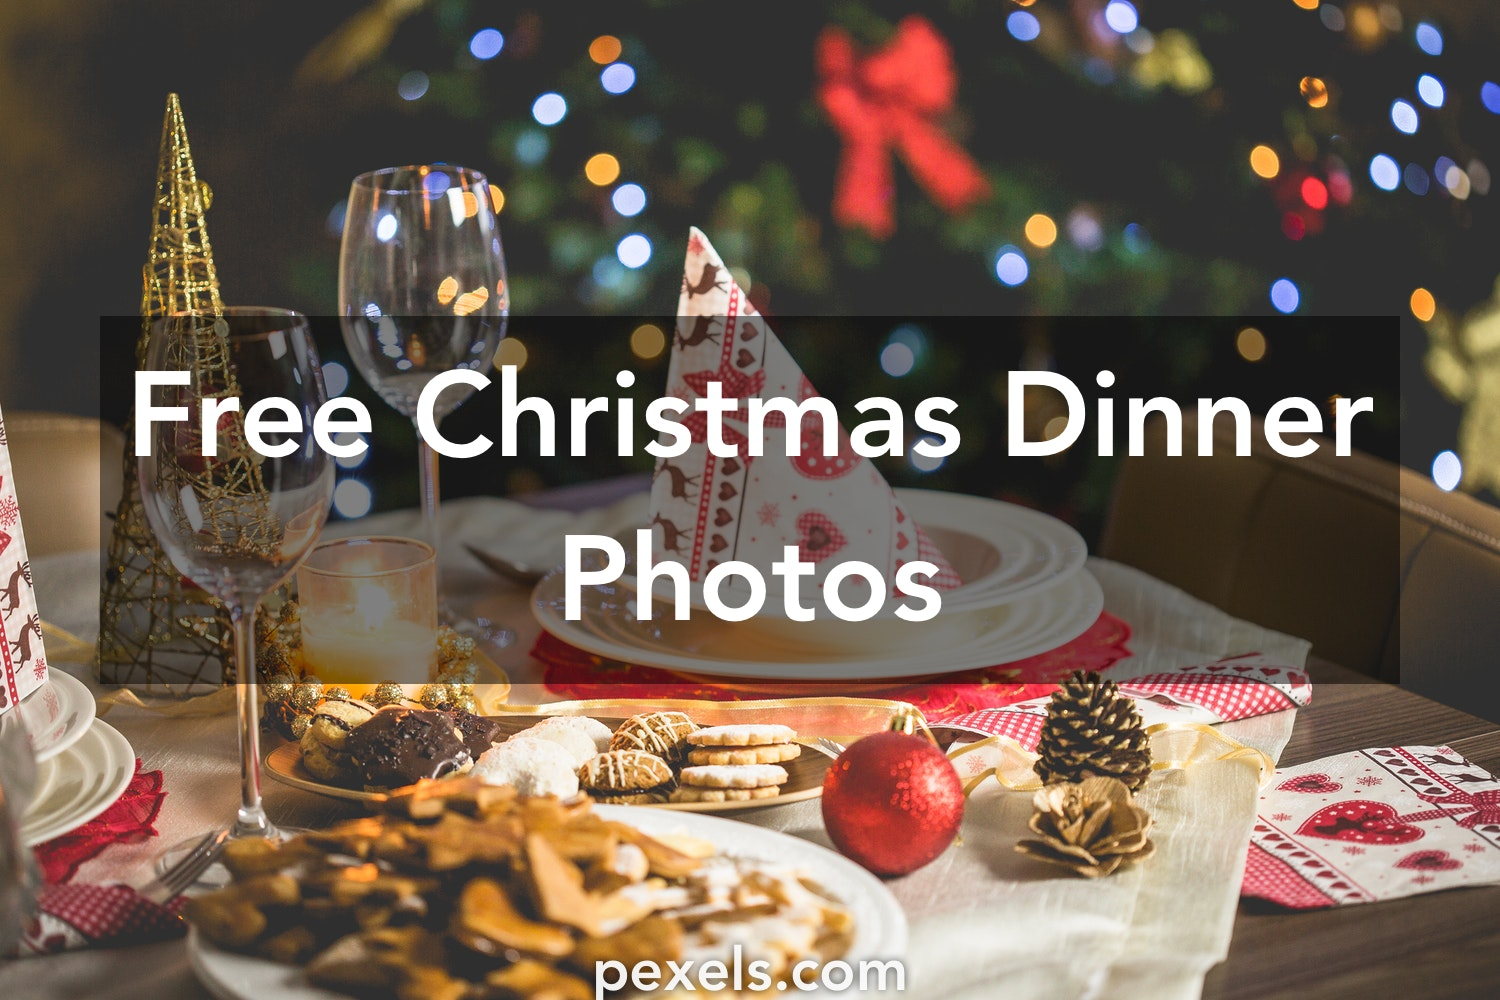 Free Christmas Dinner.1000 Amazing Christmas Dinner Photos Pexels Free Stock